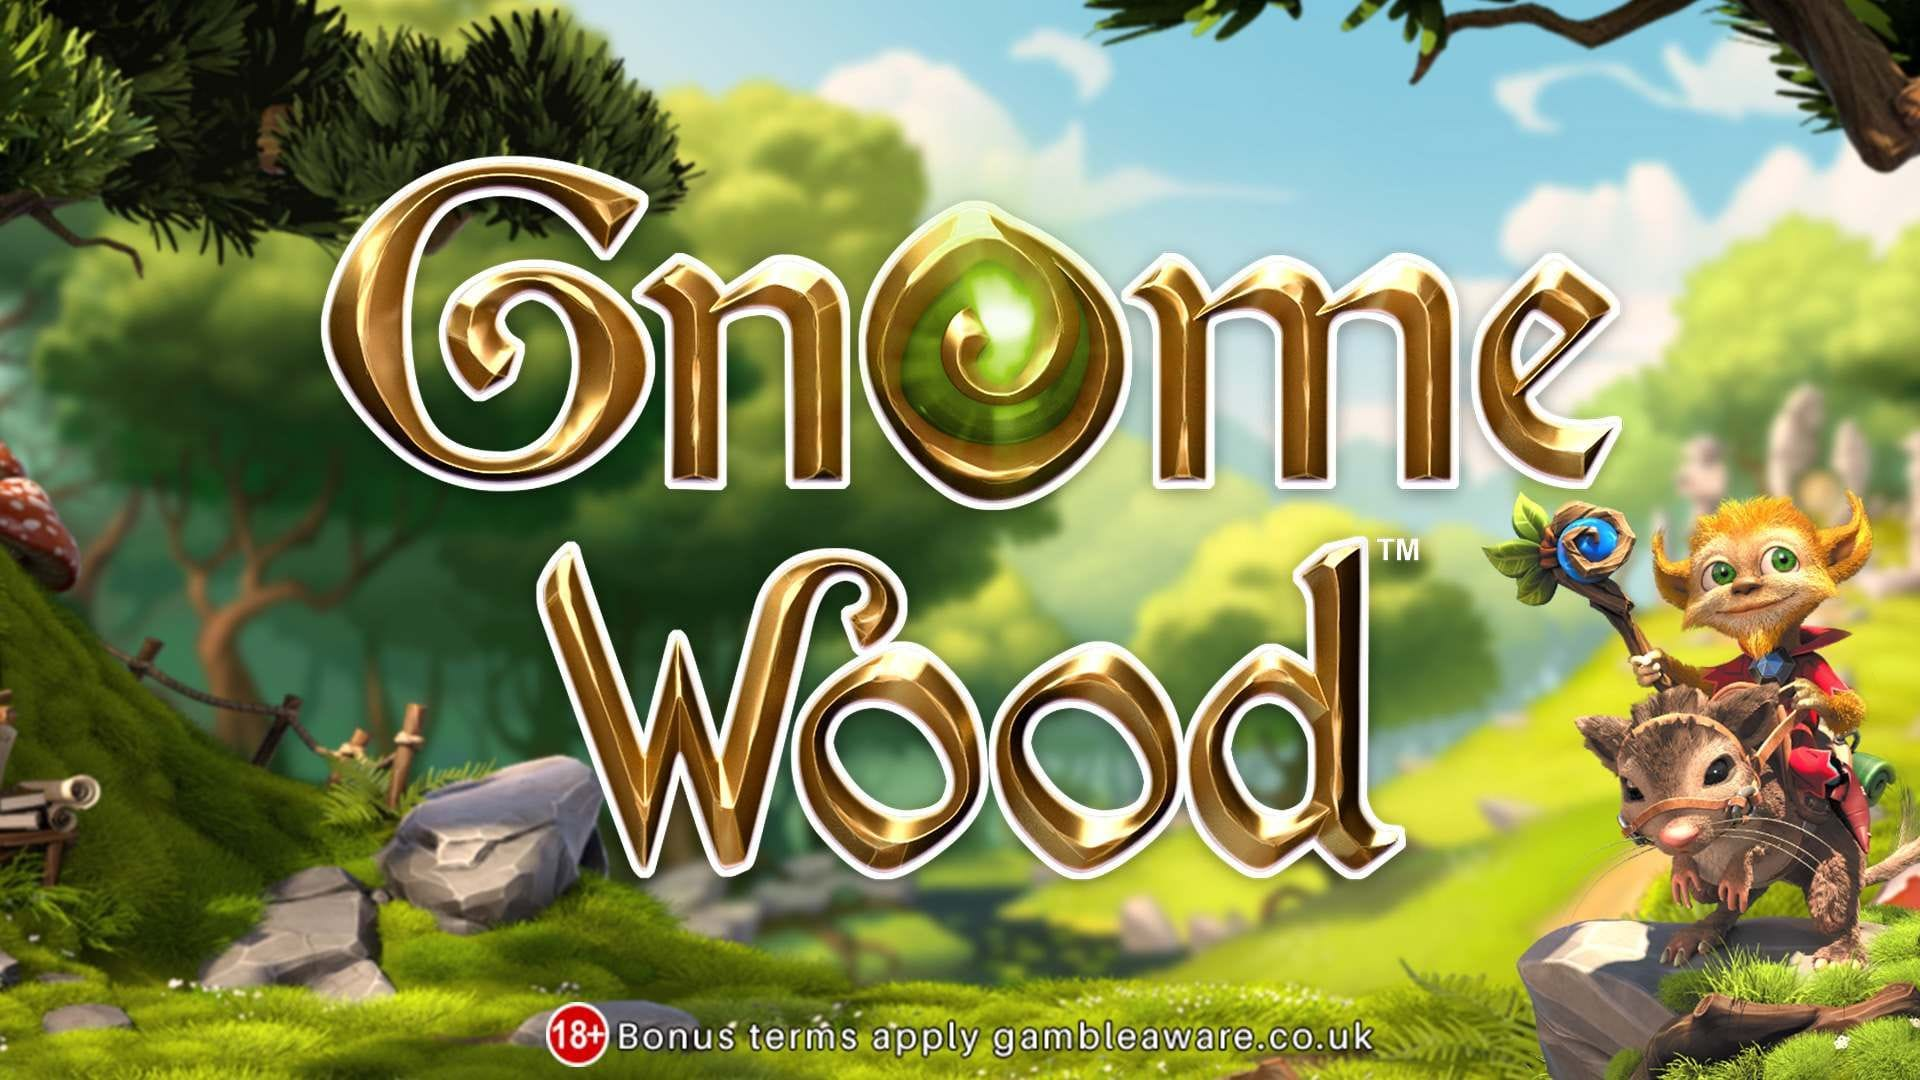 gnome wood slots game logo